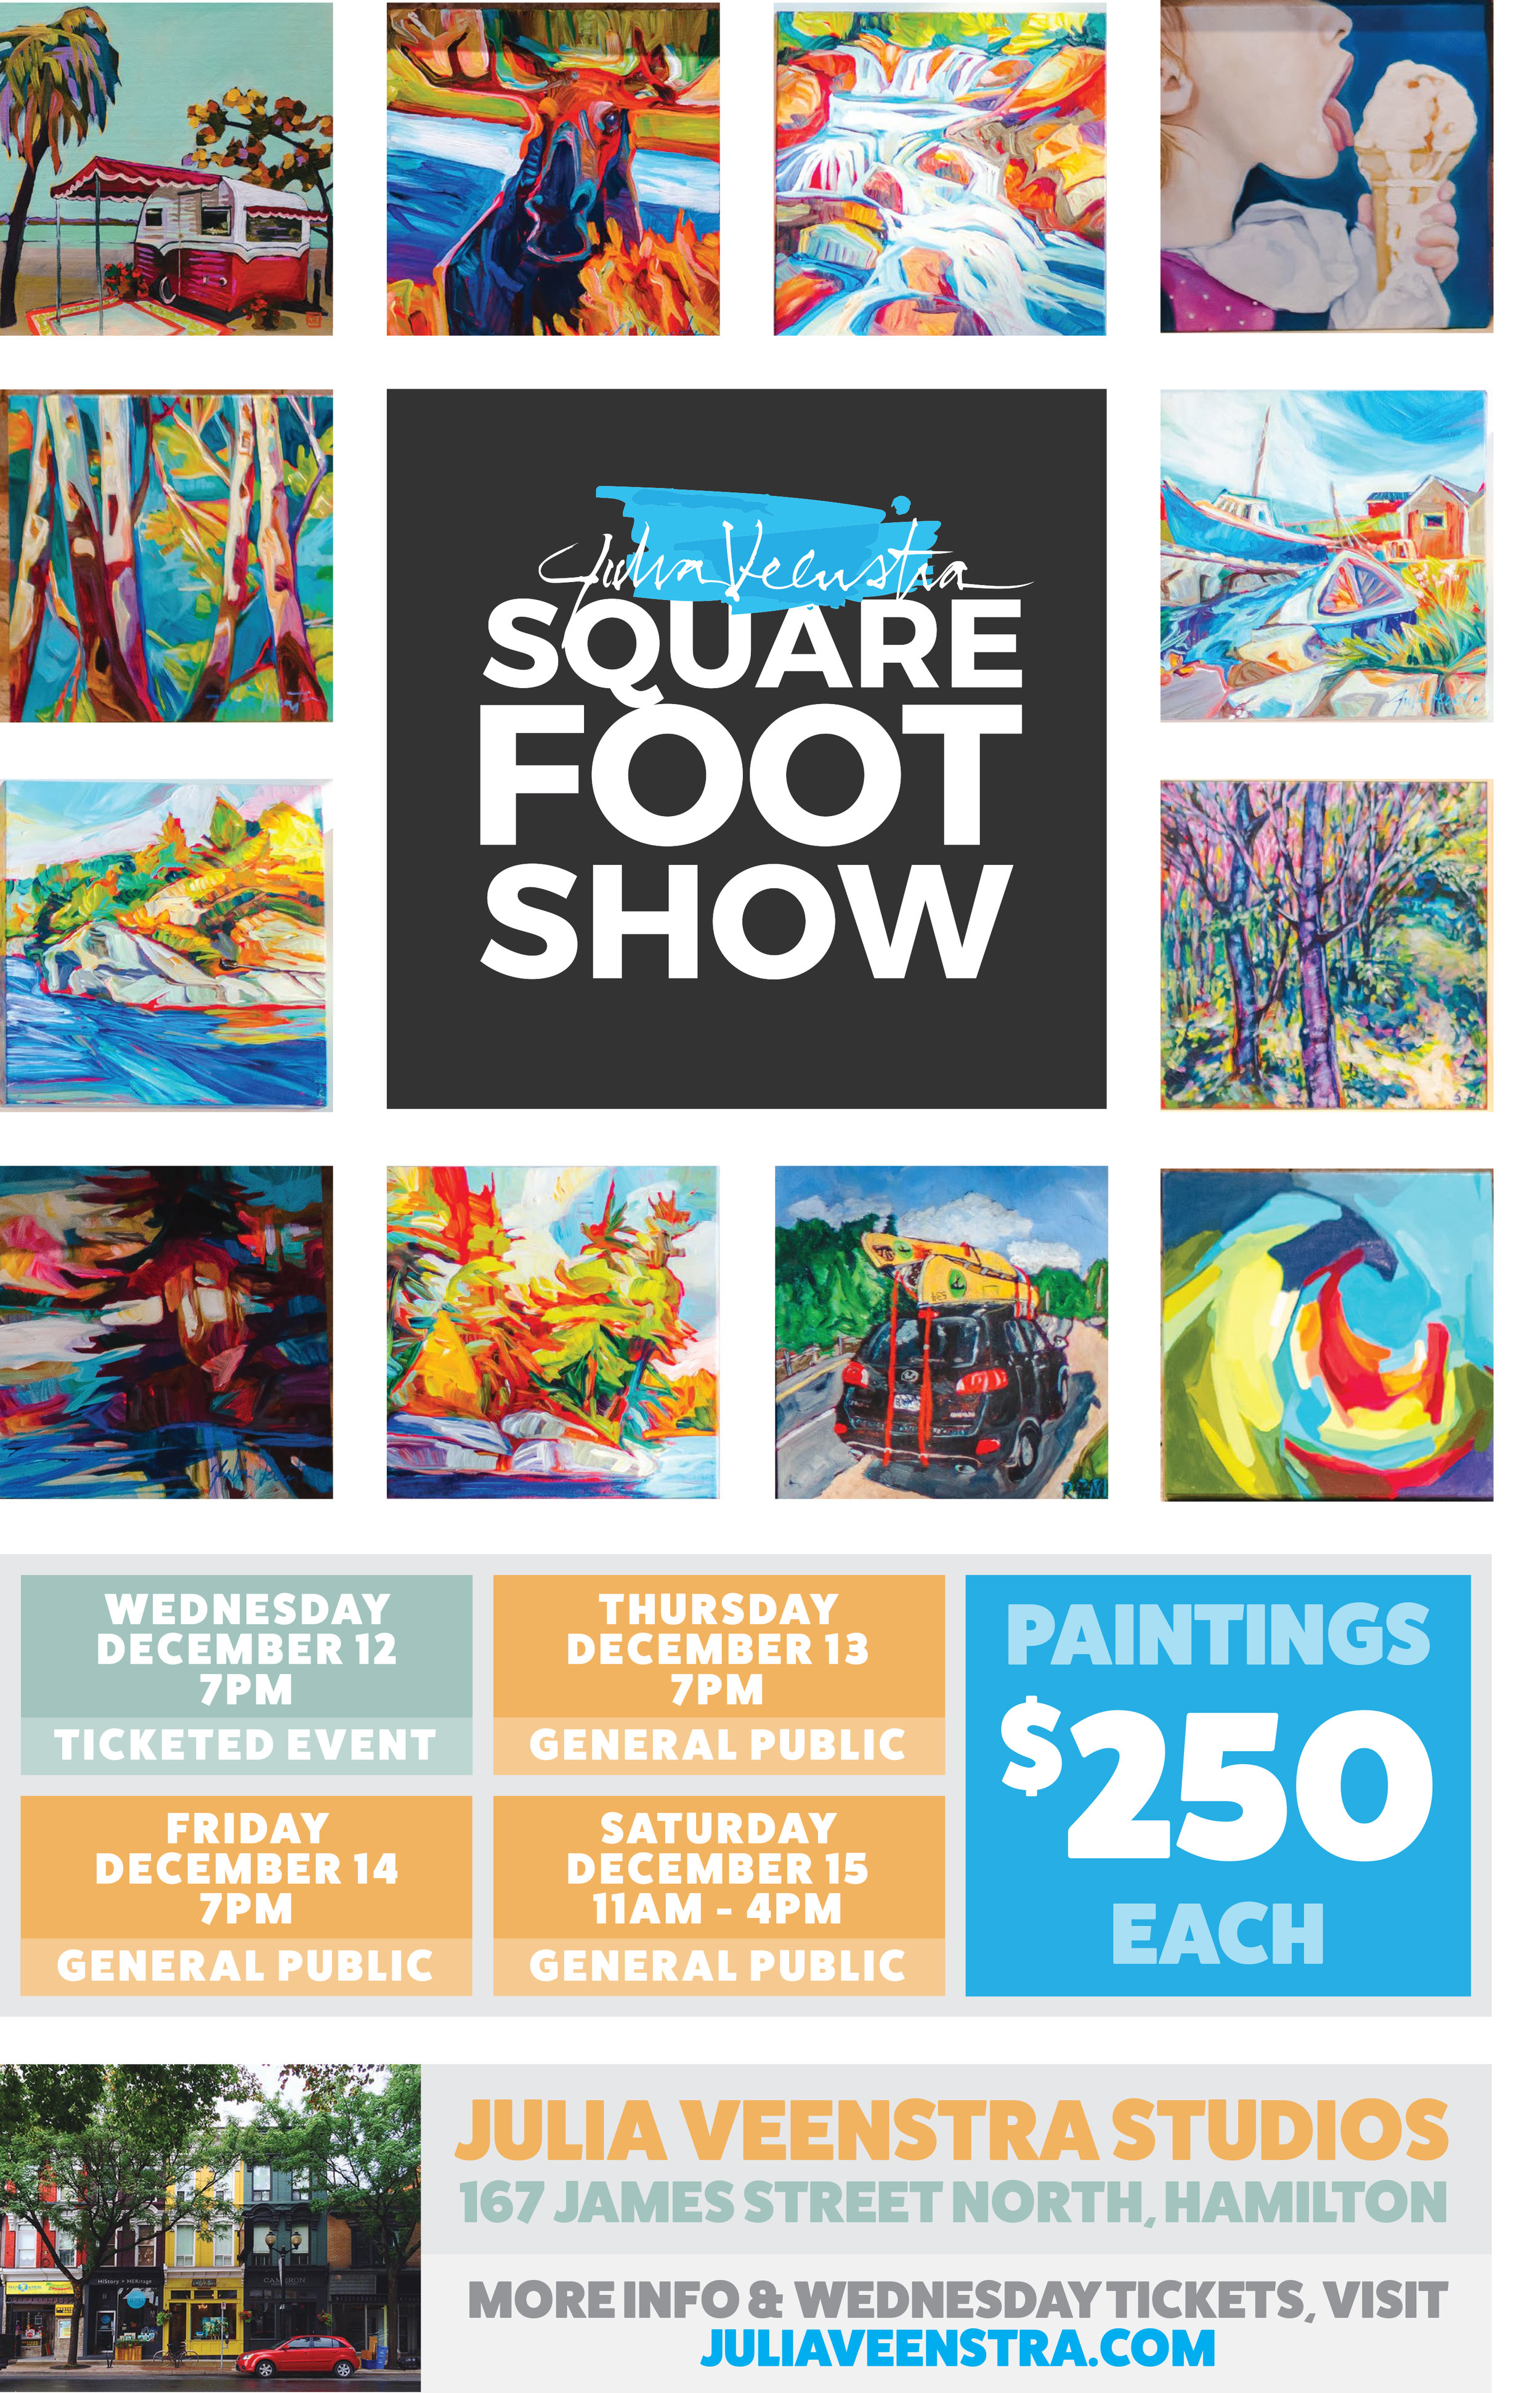 2018 Julia Veenstra - Square Foot Show - Poster-1.jpg